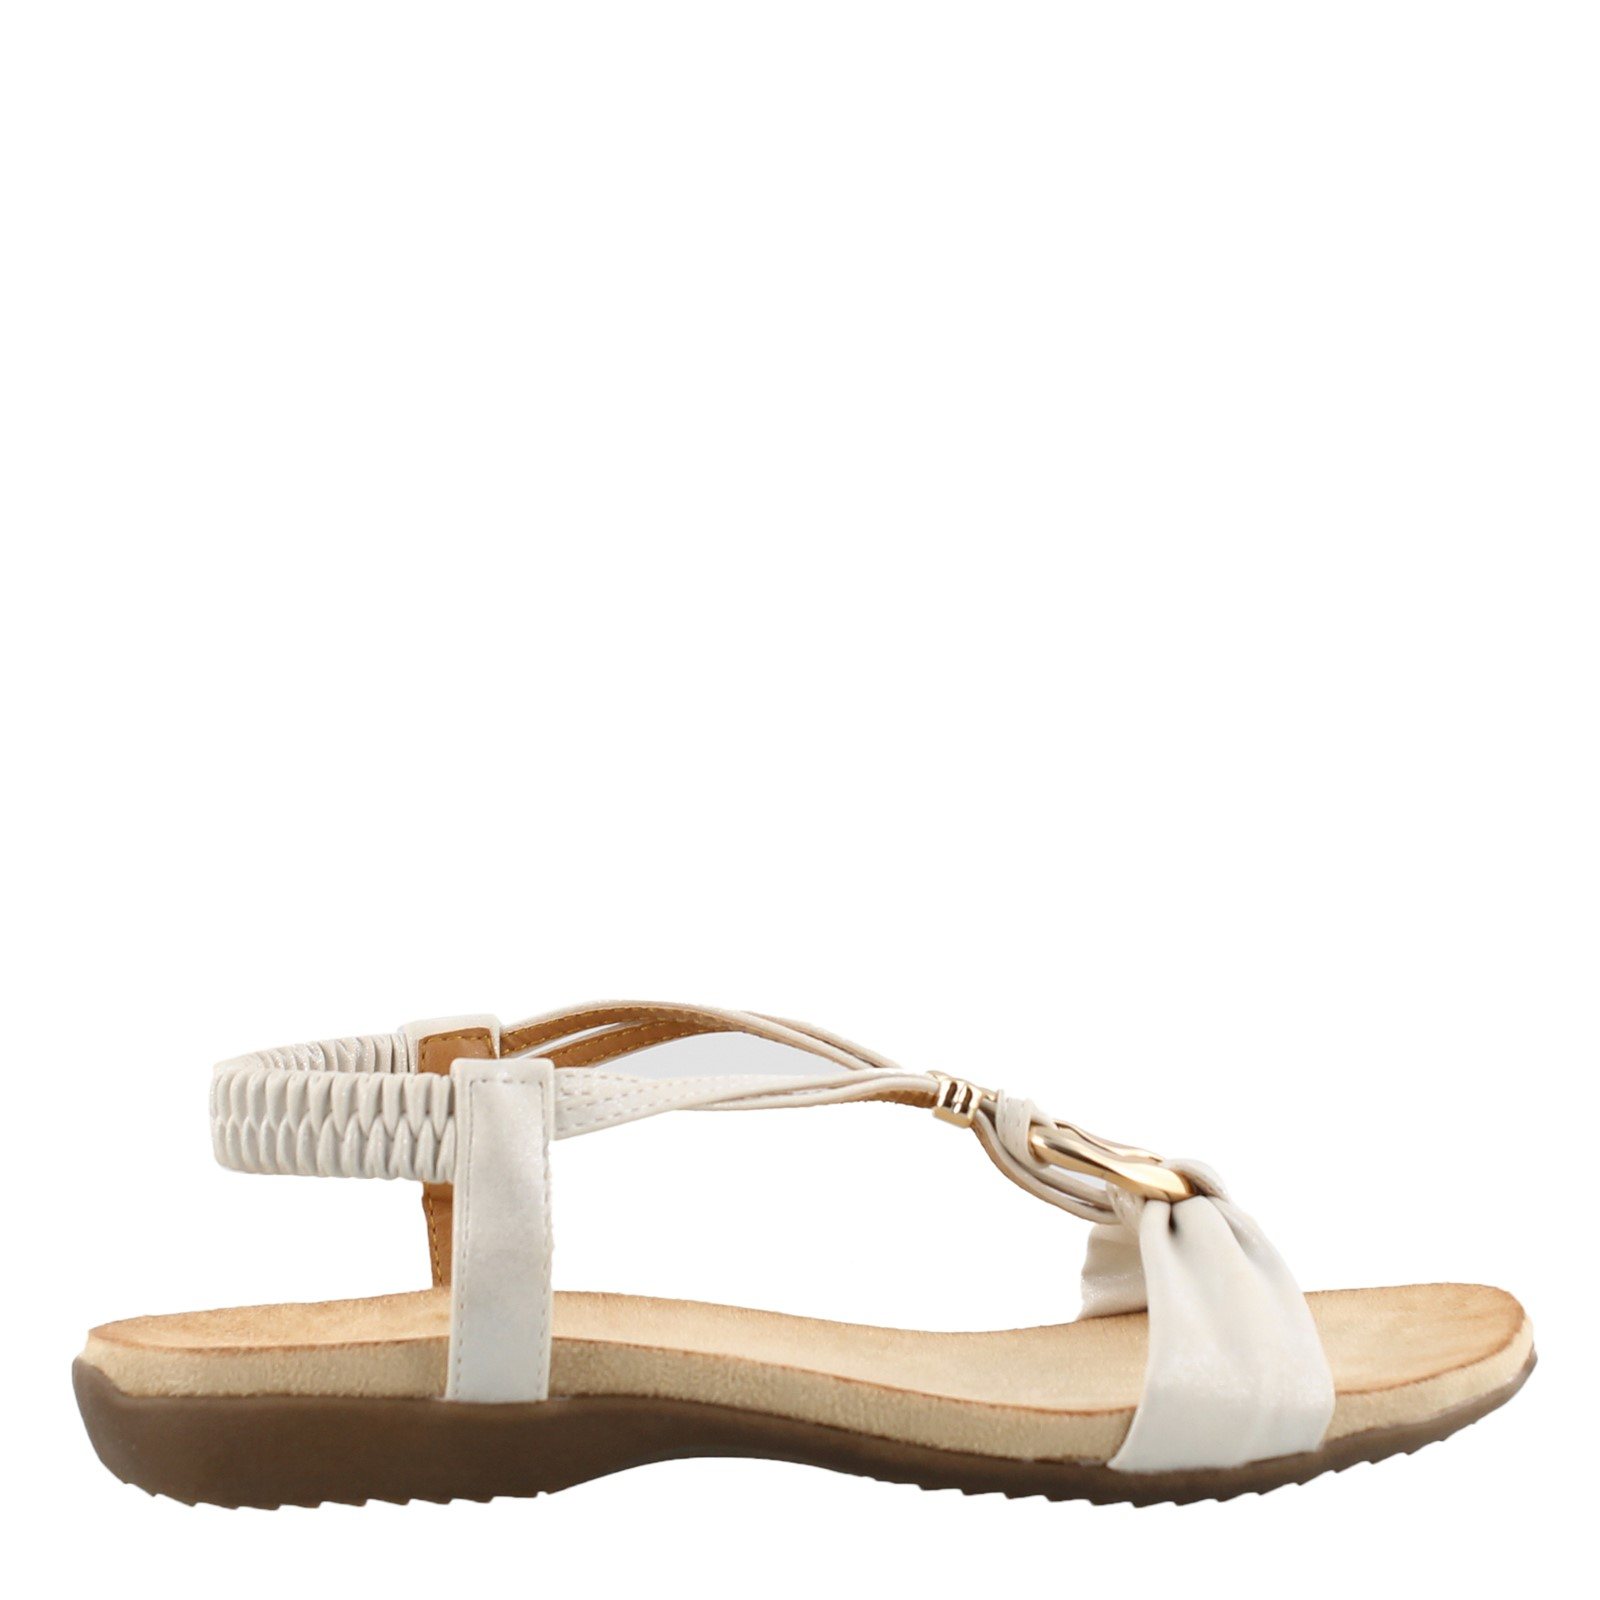 Women's Sean Alan, Kailey Sandal